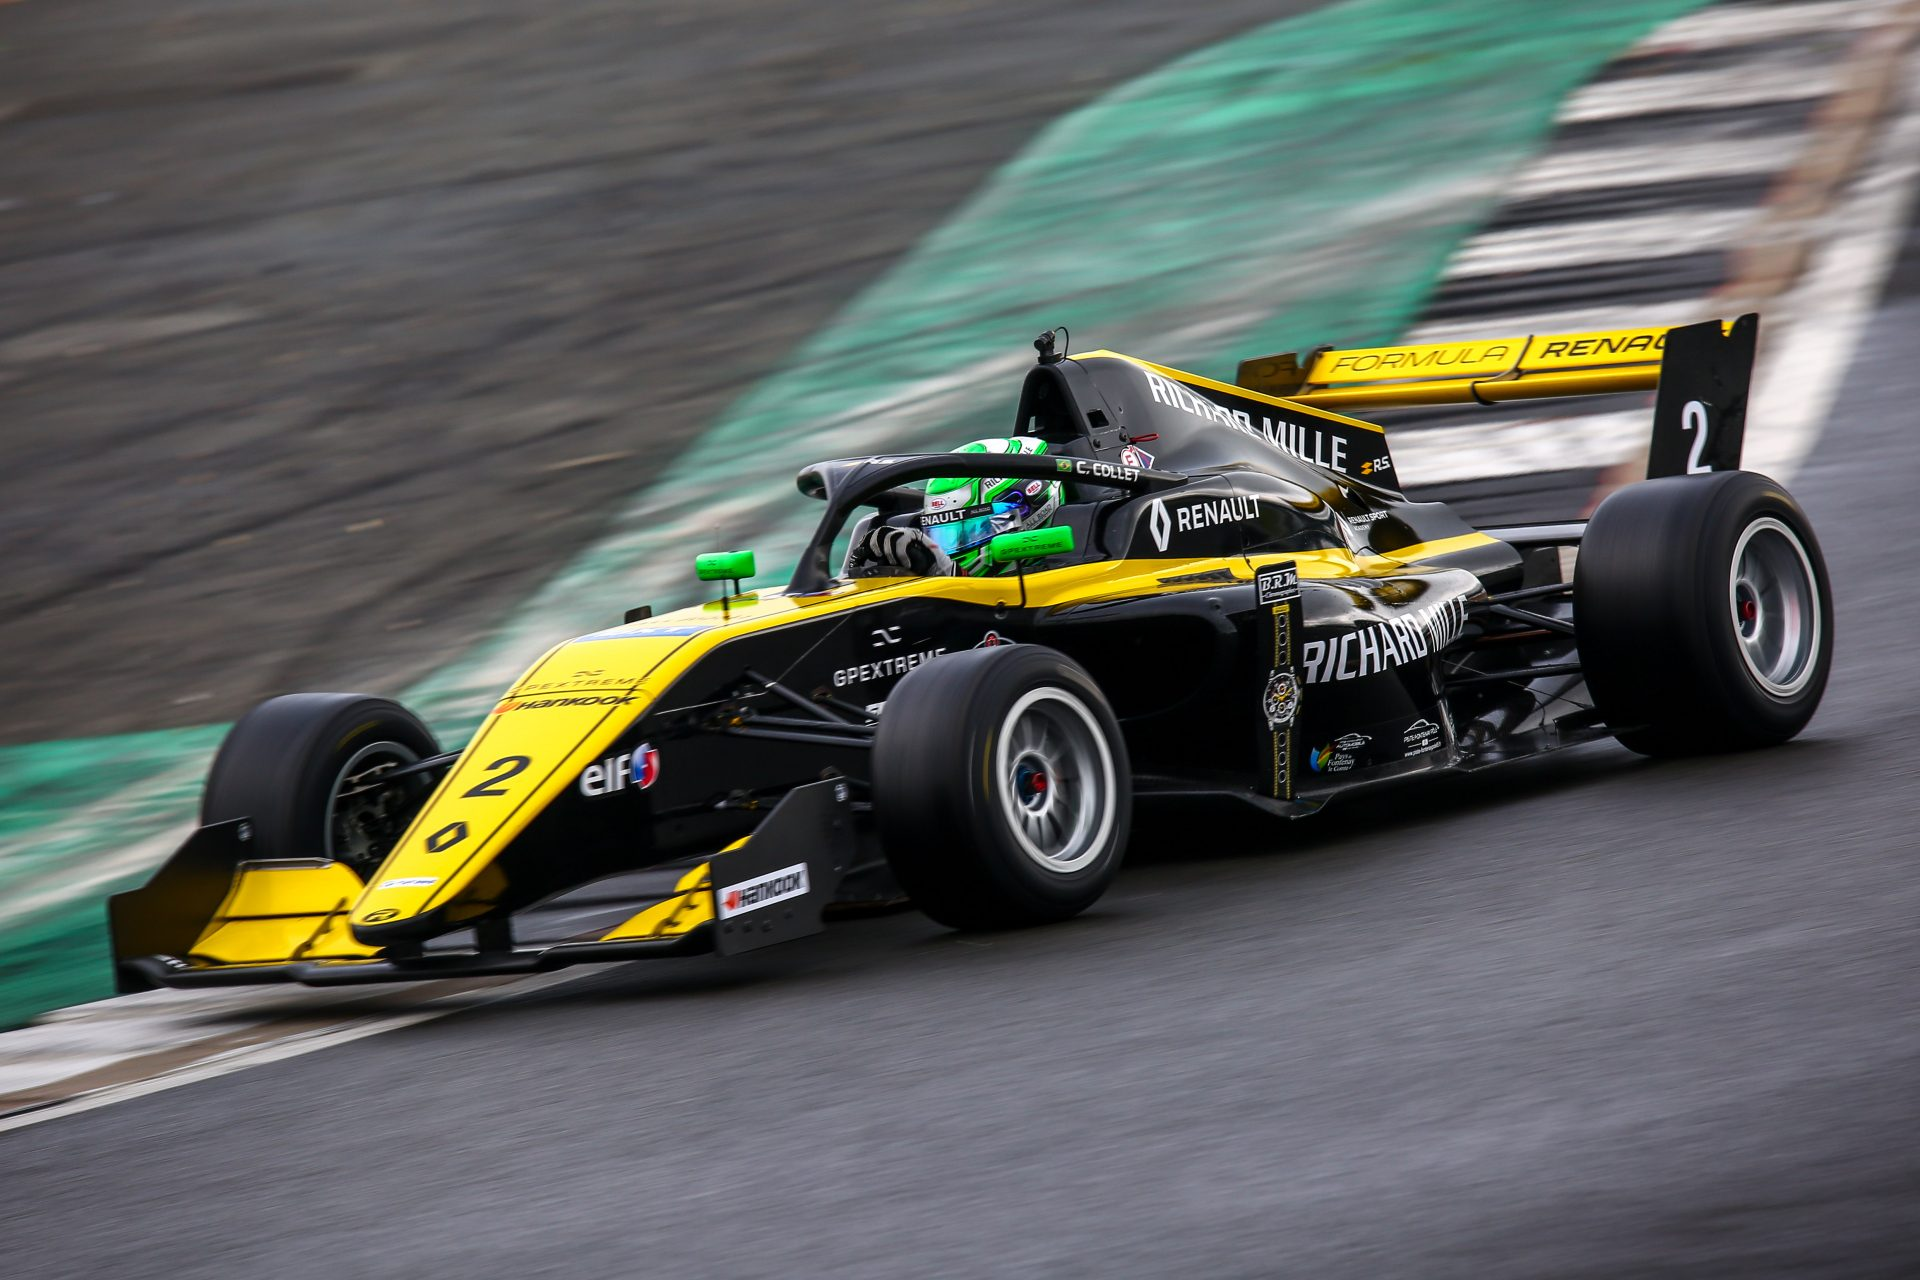 Photo of F-Renault Eurocup – Collet vence entre os estreantes no domingo e pontua nas 2 provas em Silverstone